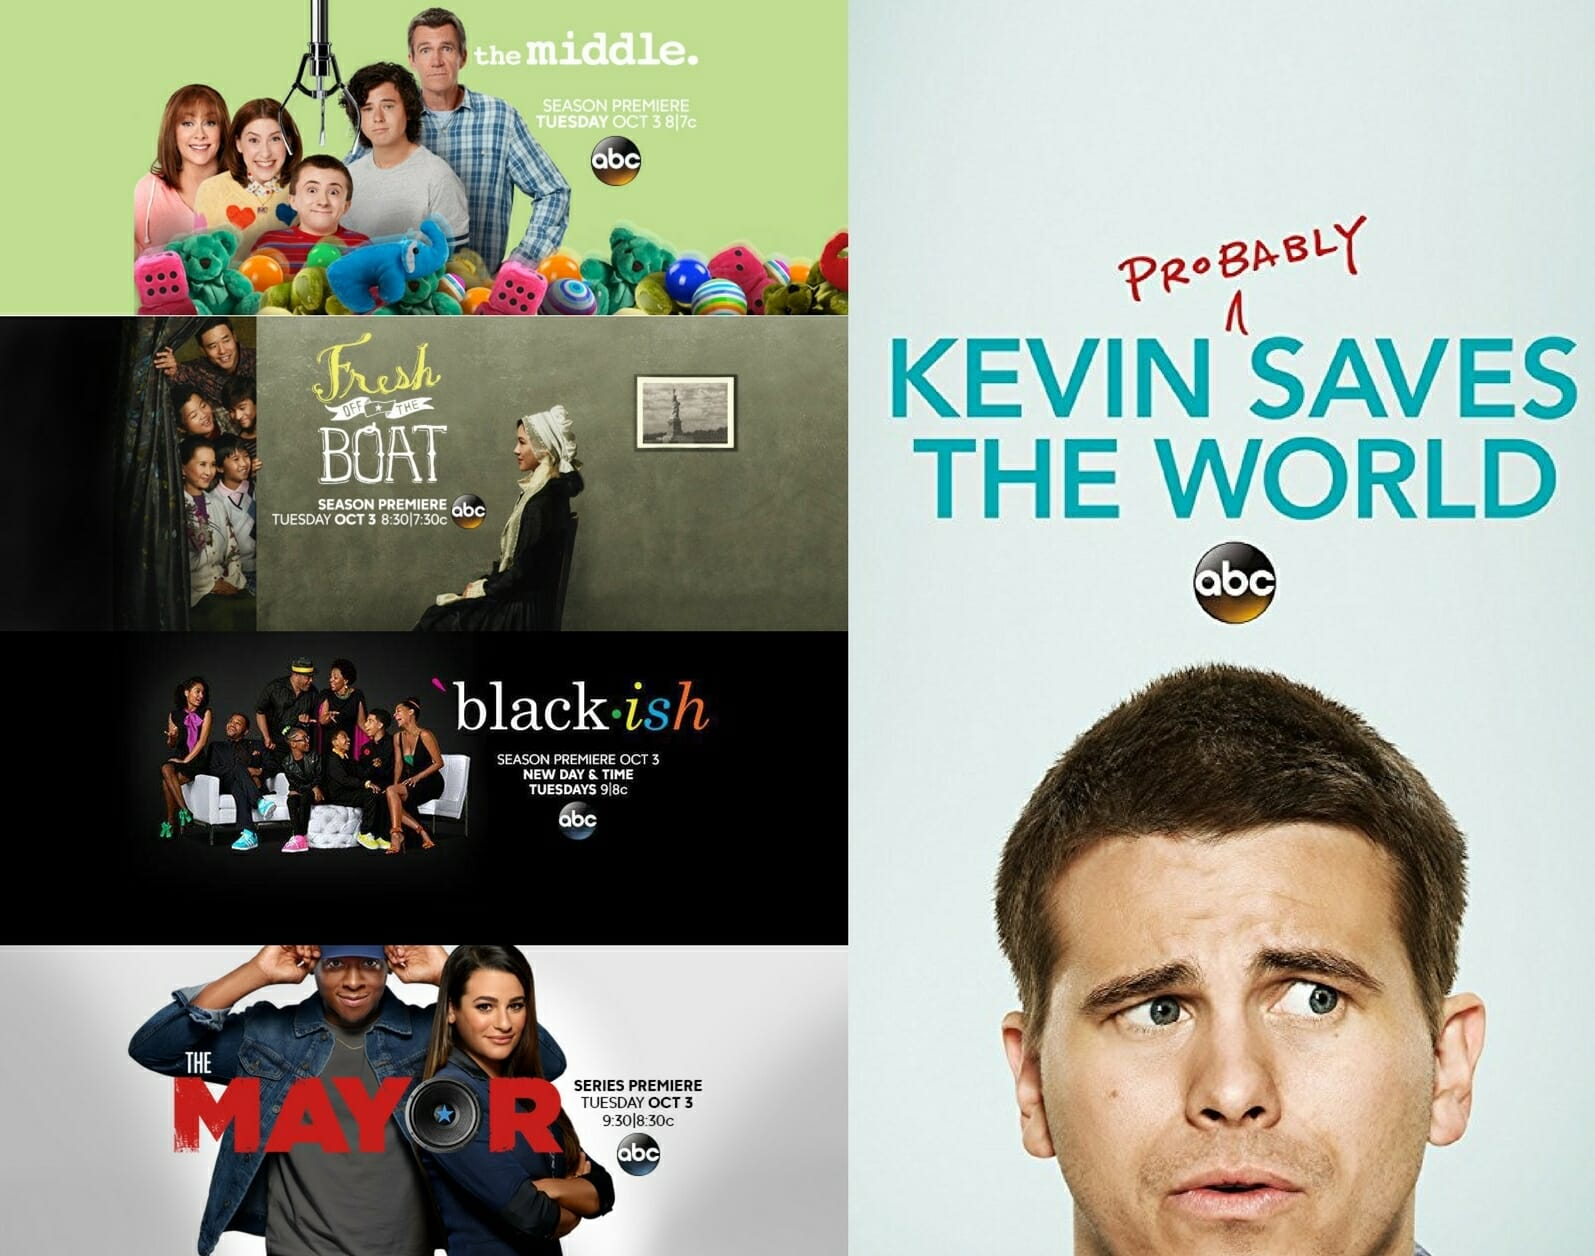 Fall TV Tuesday Night on ABC: what's new, 'black-ish